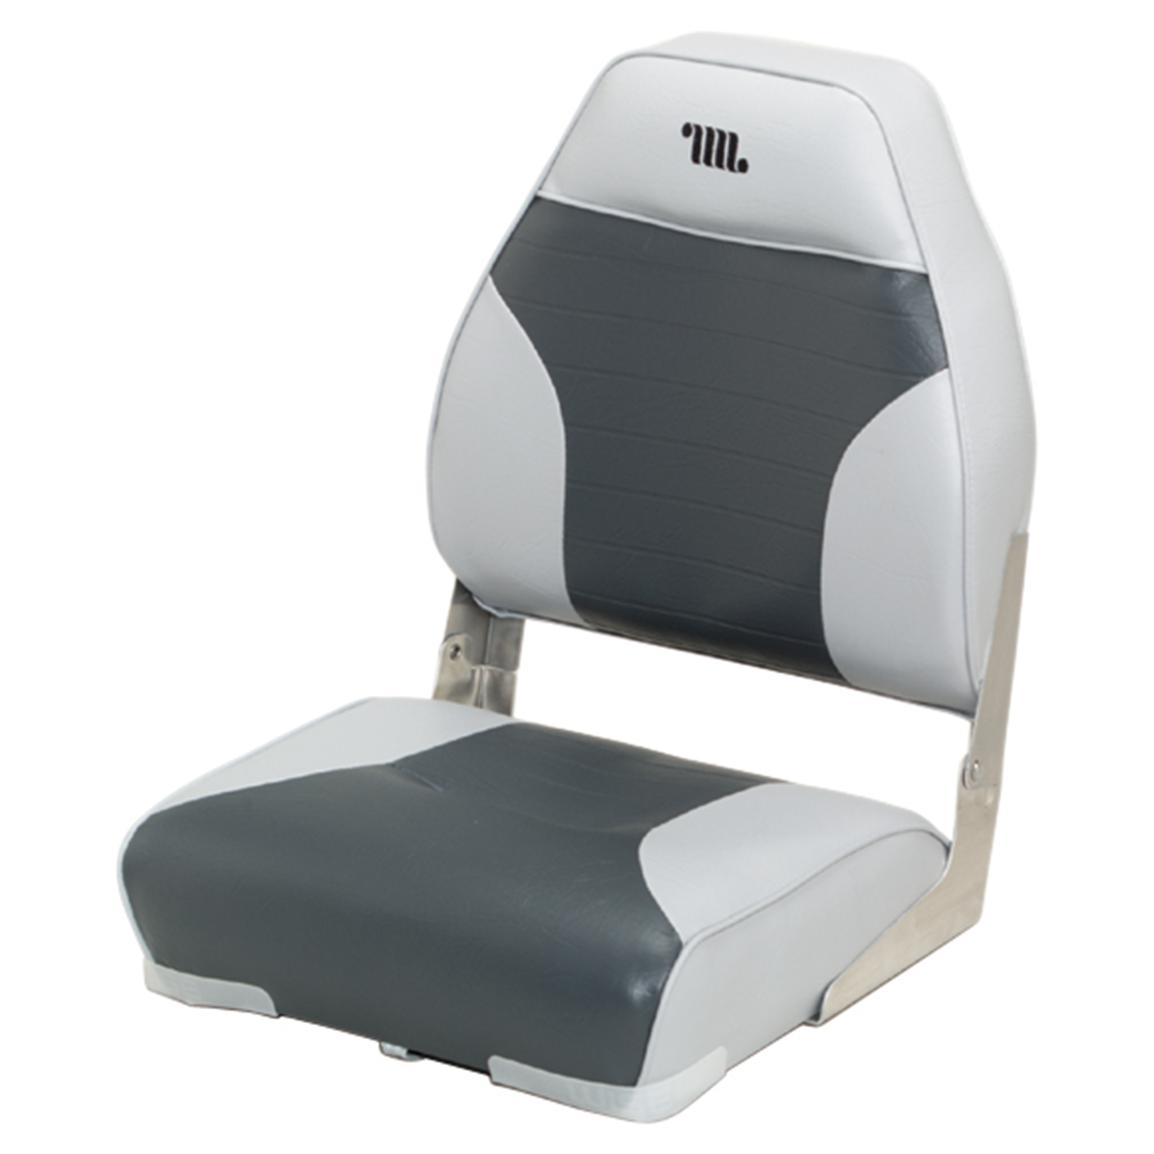 Wise Premium Folding Fishing Boat Seat, Grey / Charcoal